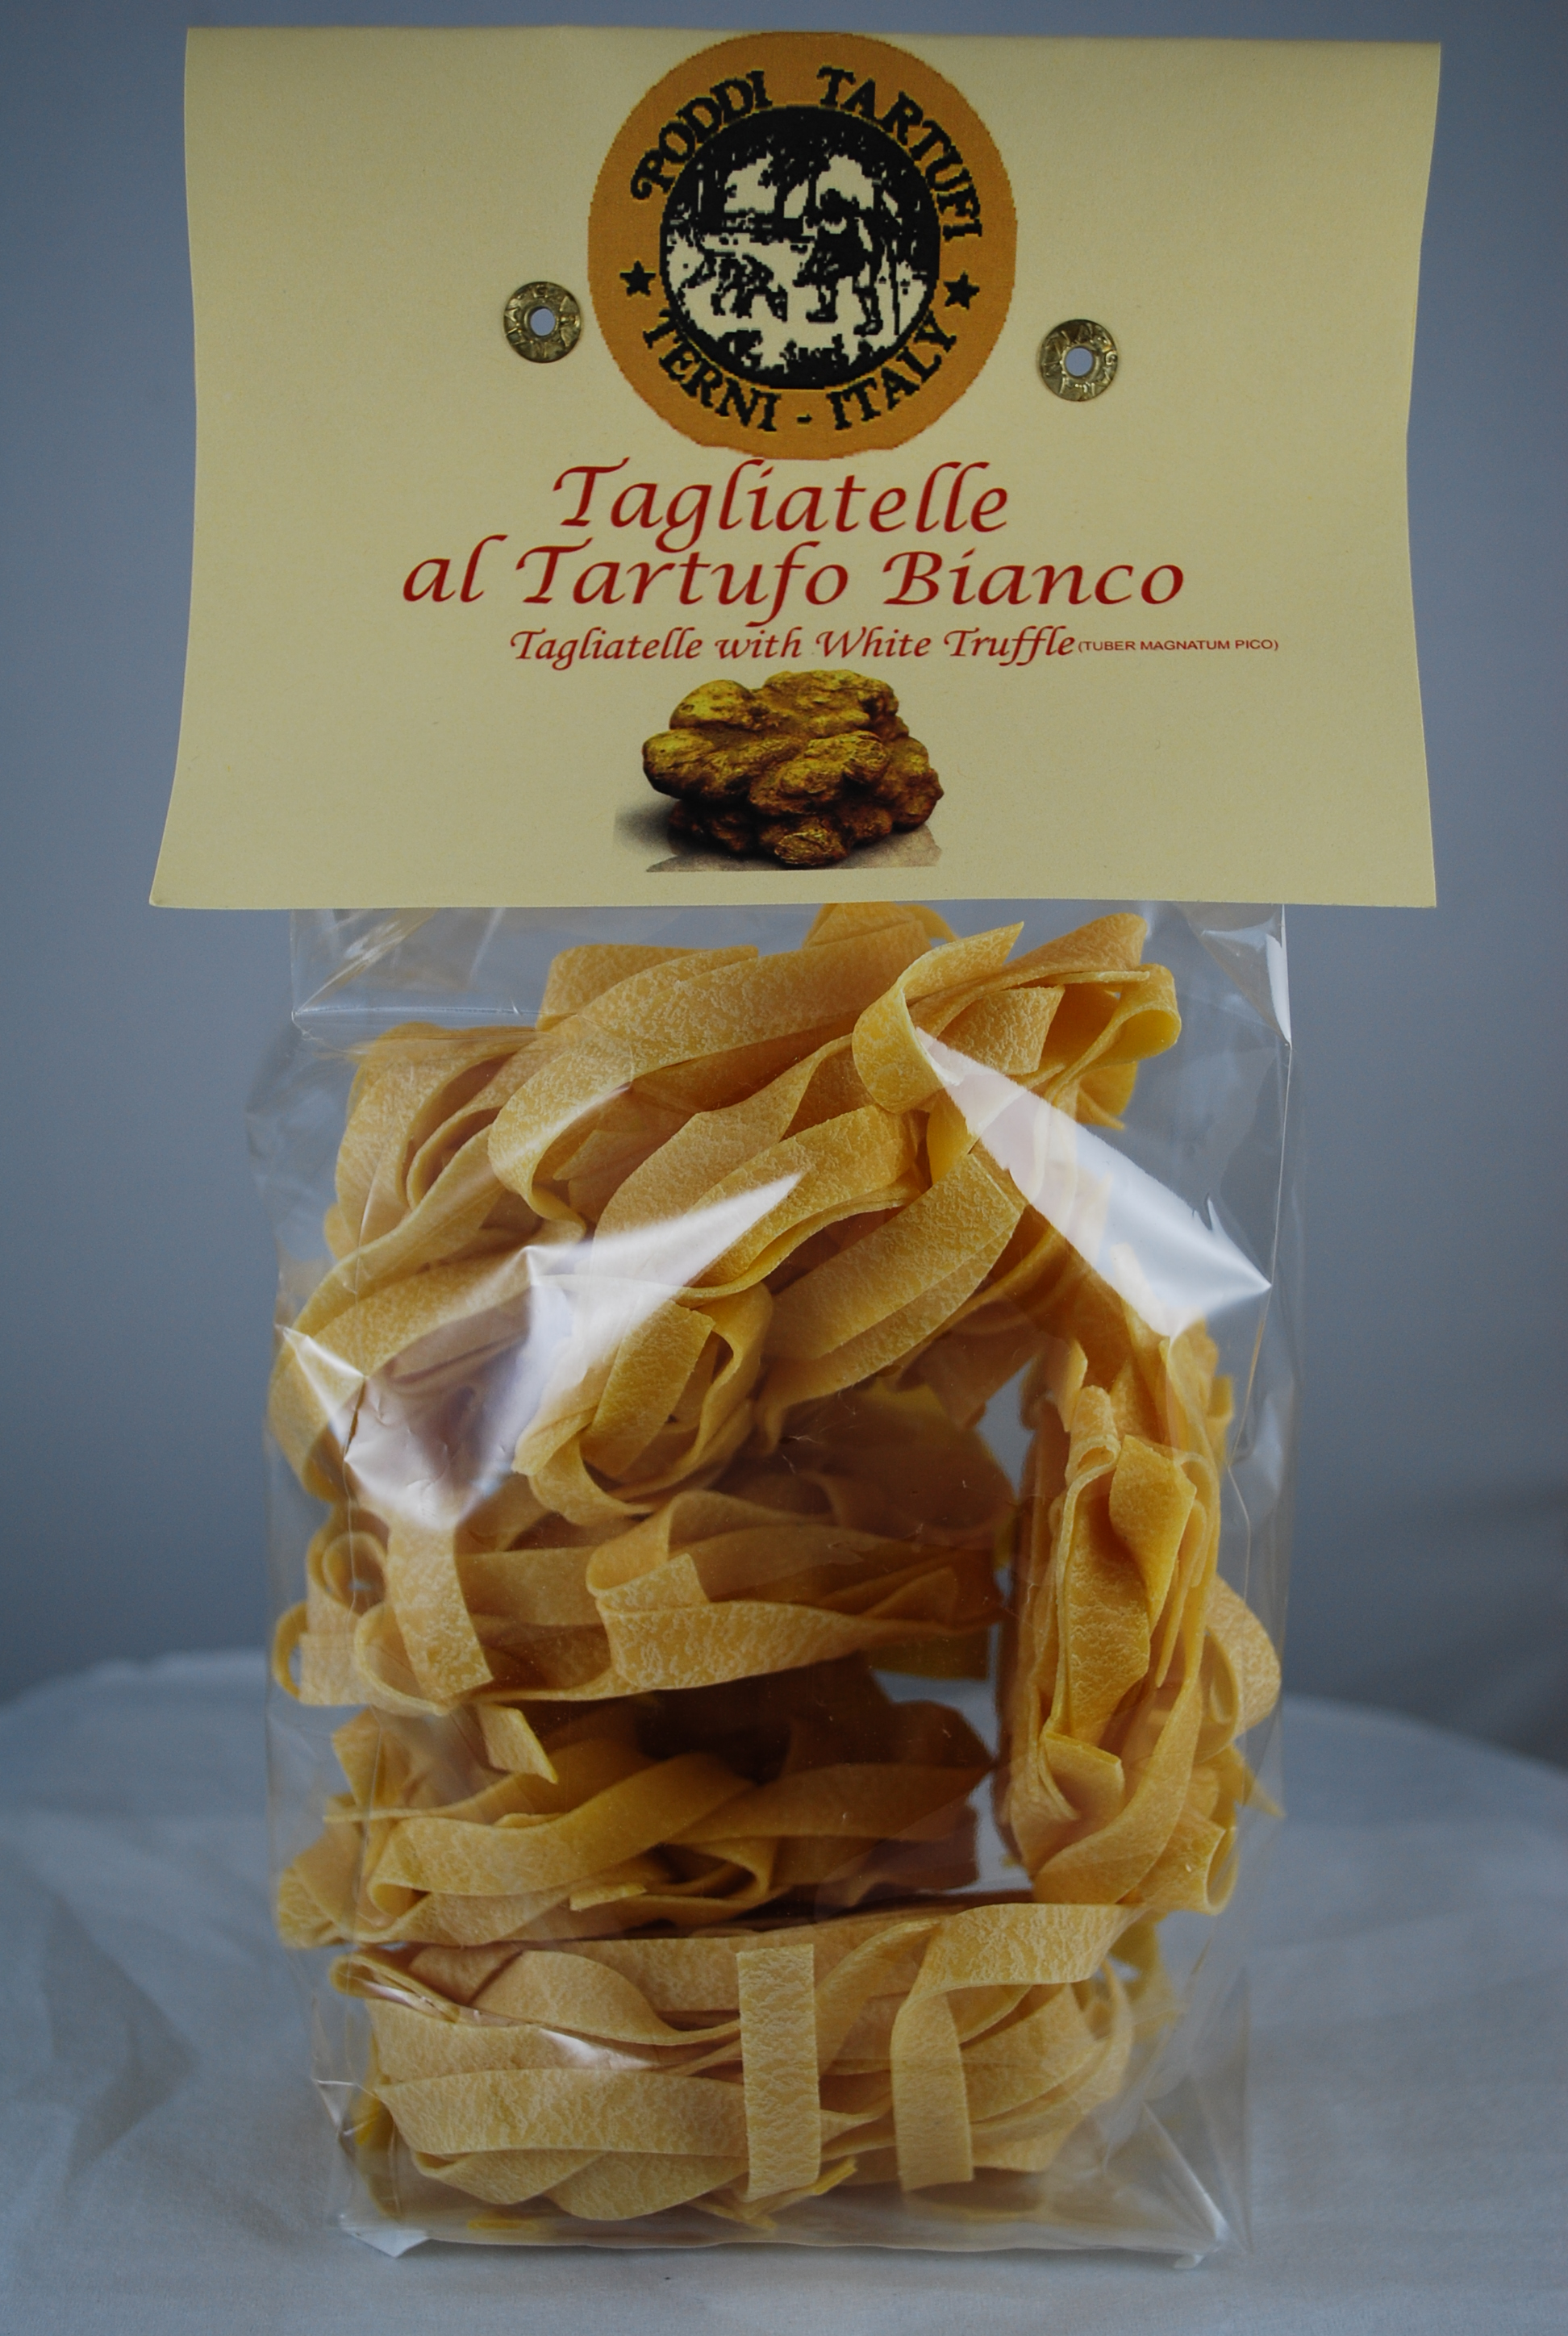 Tagliatelle with White Truffle from Poddi Tartufi